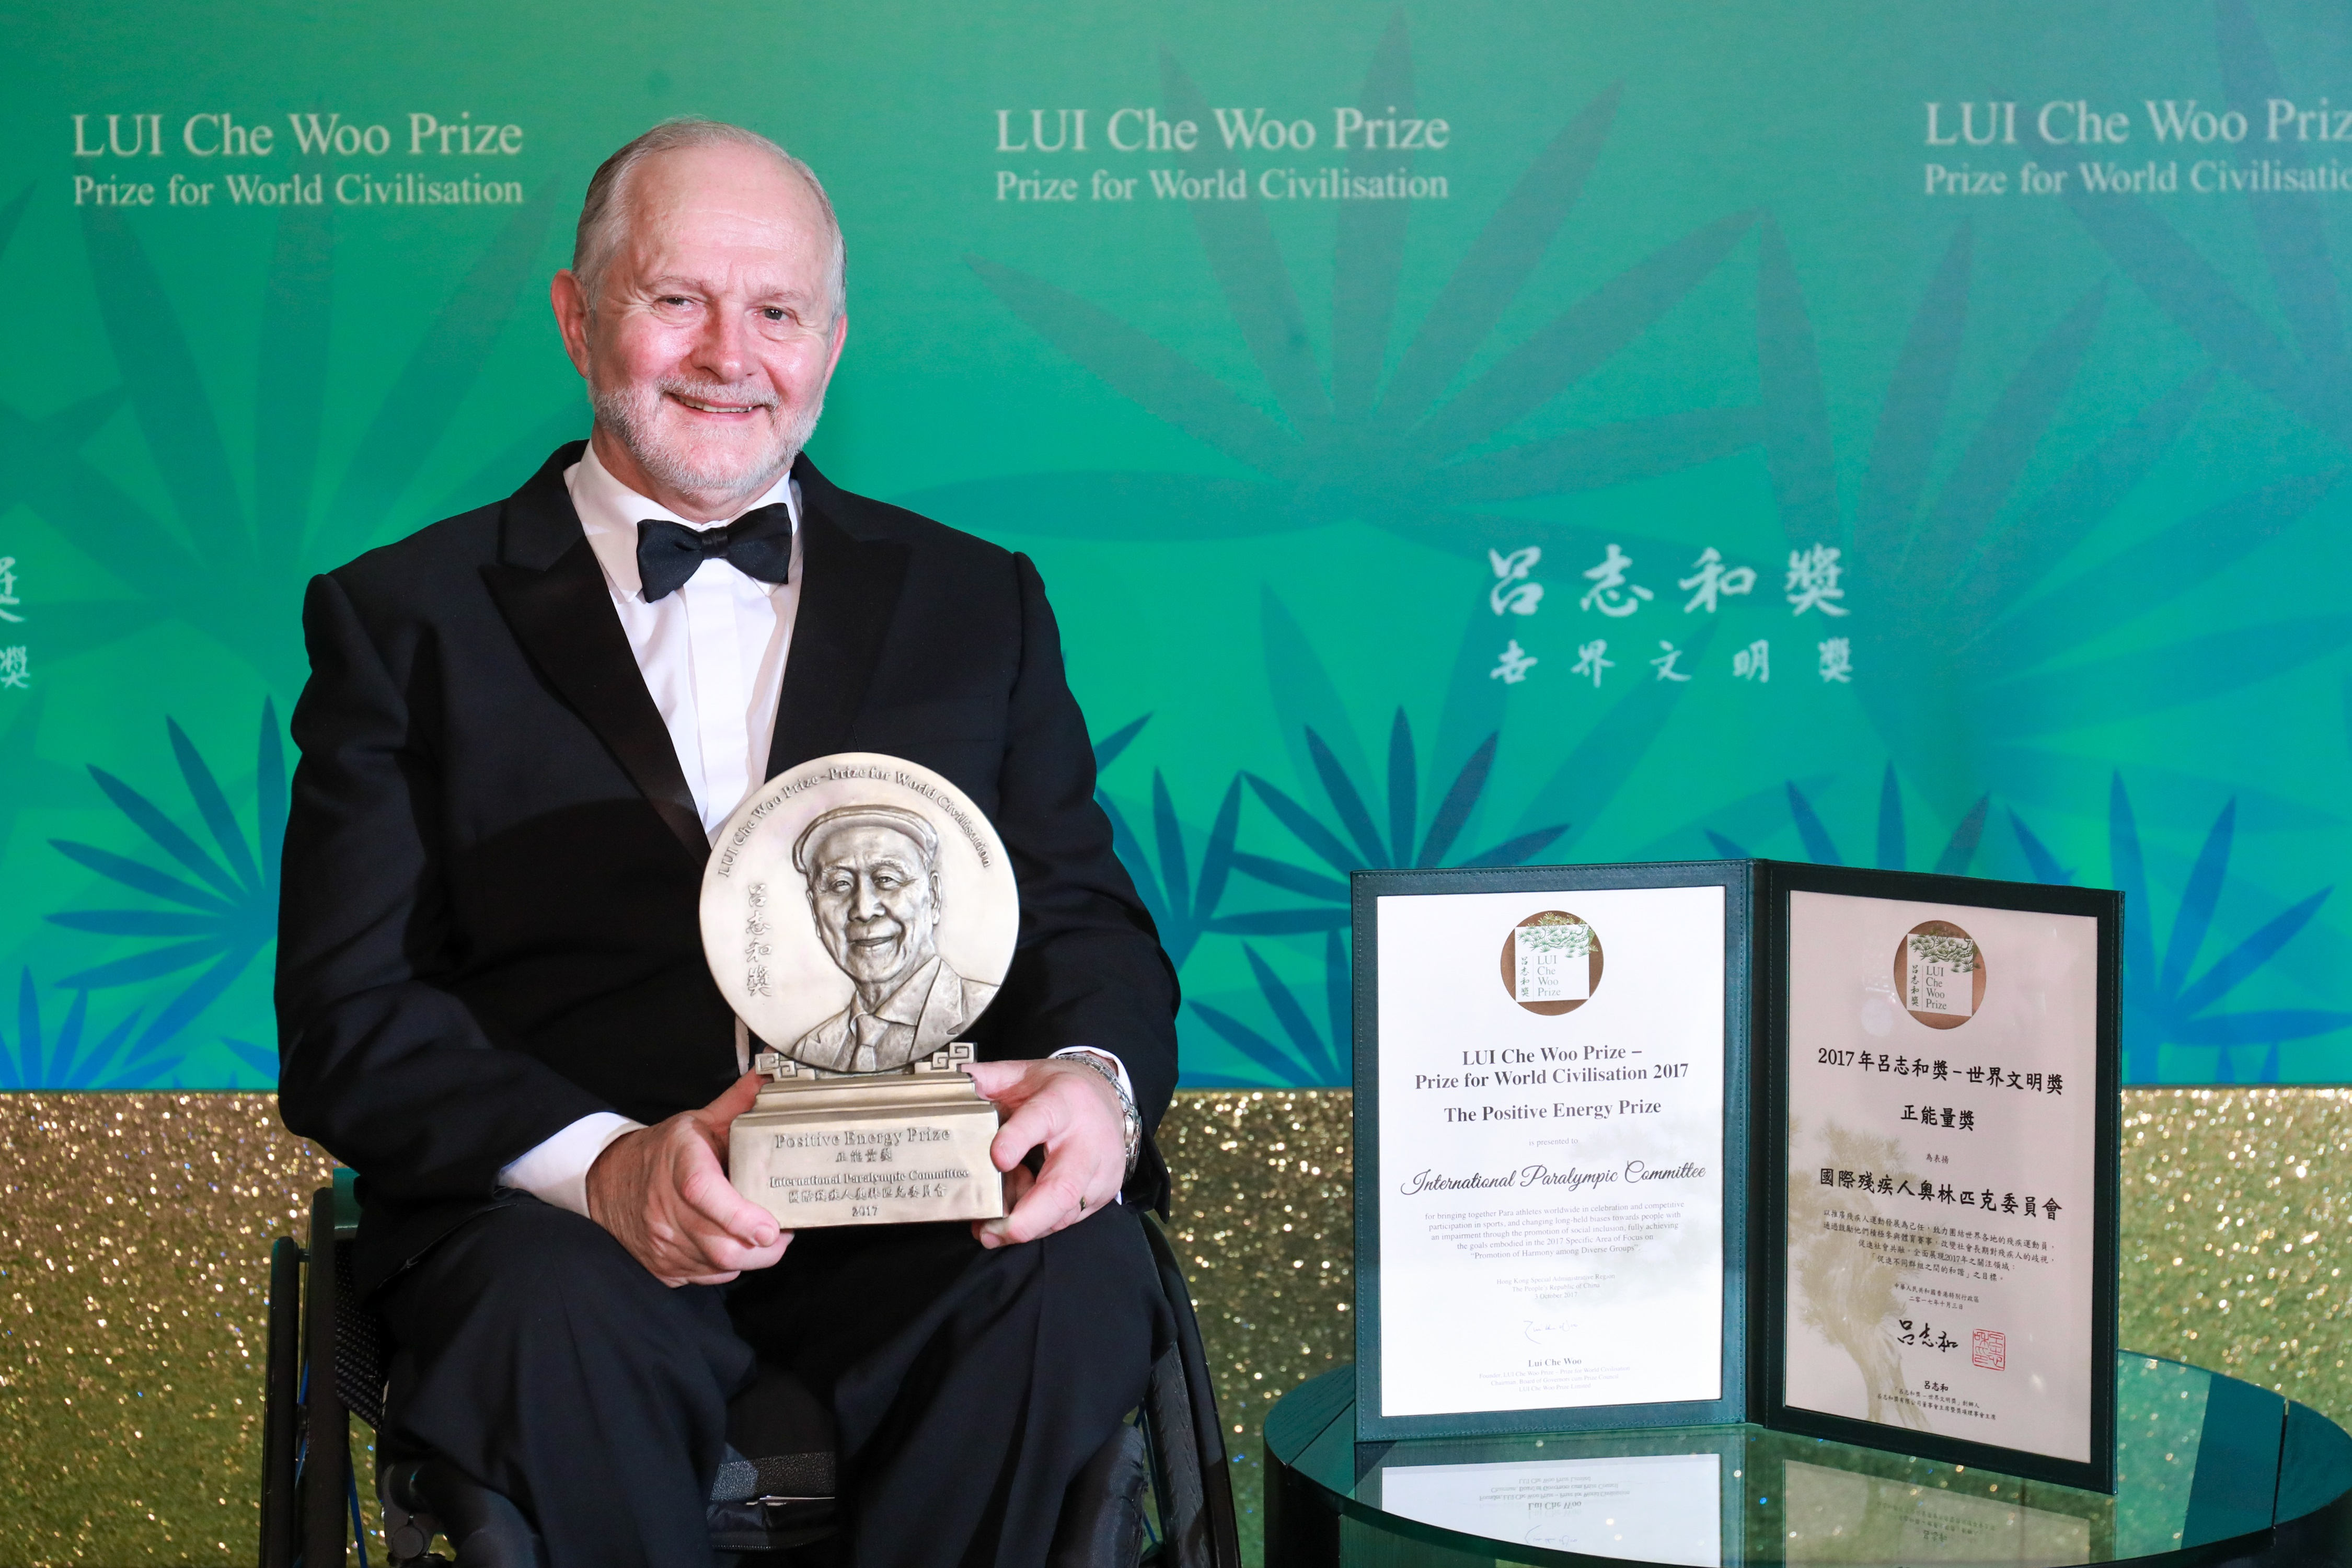 2017 LUI Che Woo Prize Positive Energy Prize Laureate - International Paralympic Committee (IPC) - represented by Sir Philip Craven, President of the IPC (2001-2017)